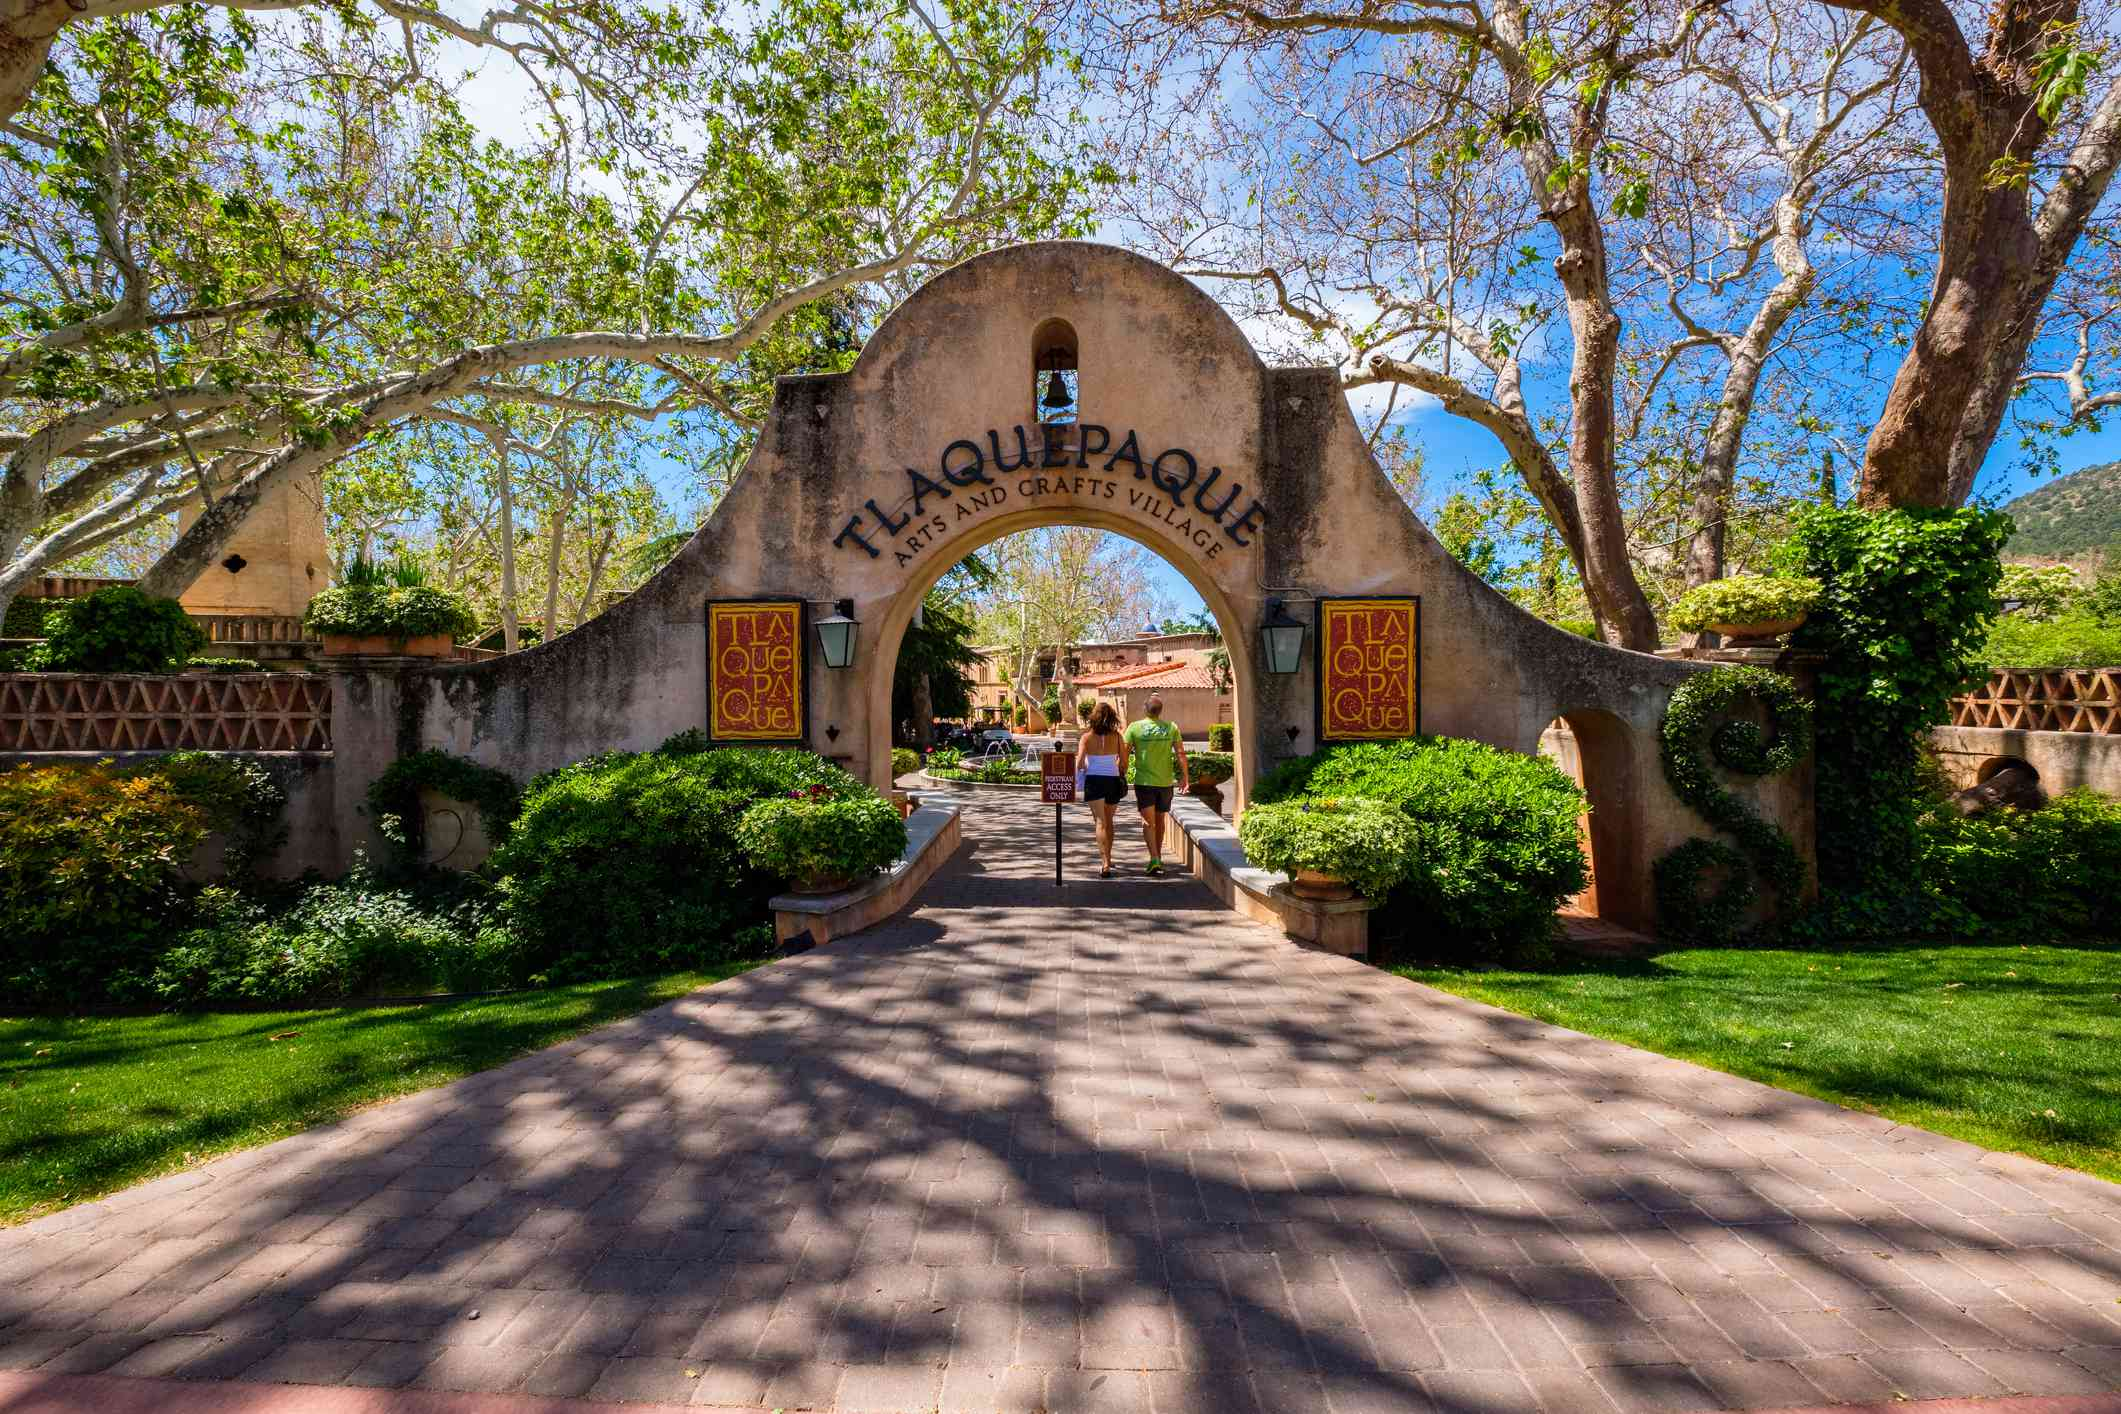 Two people walking under the entrance arch to Tlaquepaque Village Sedona